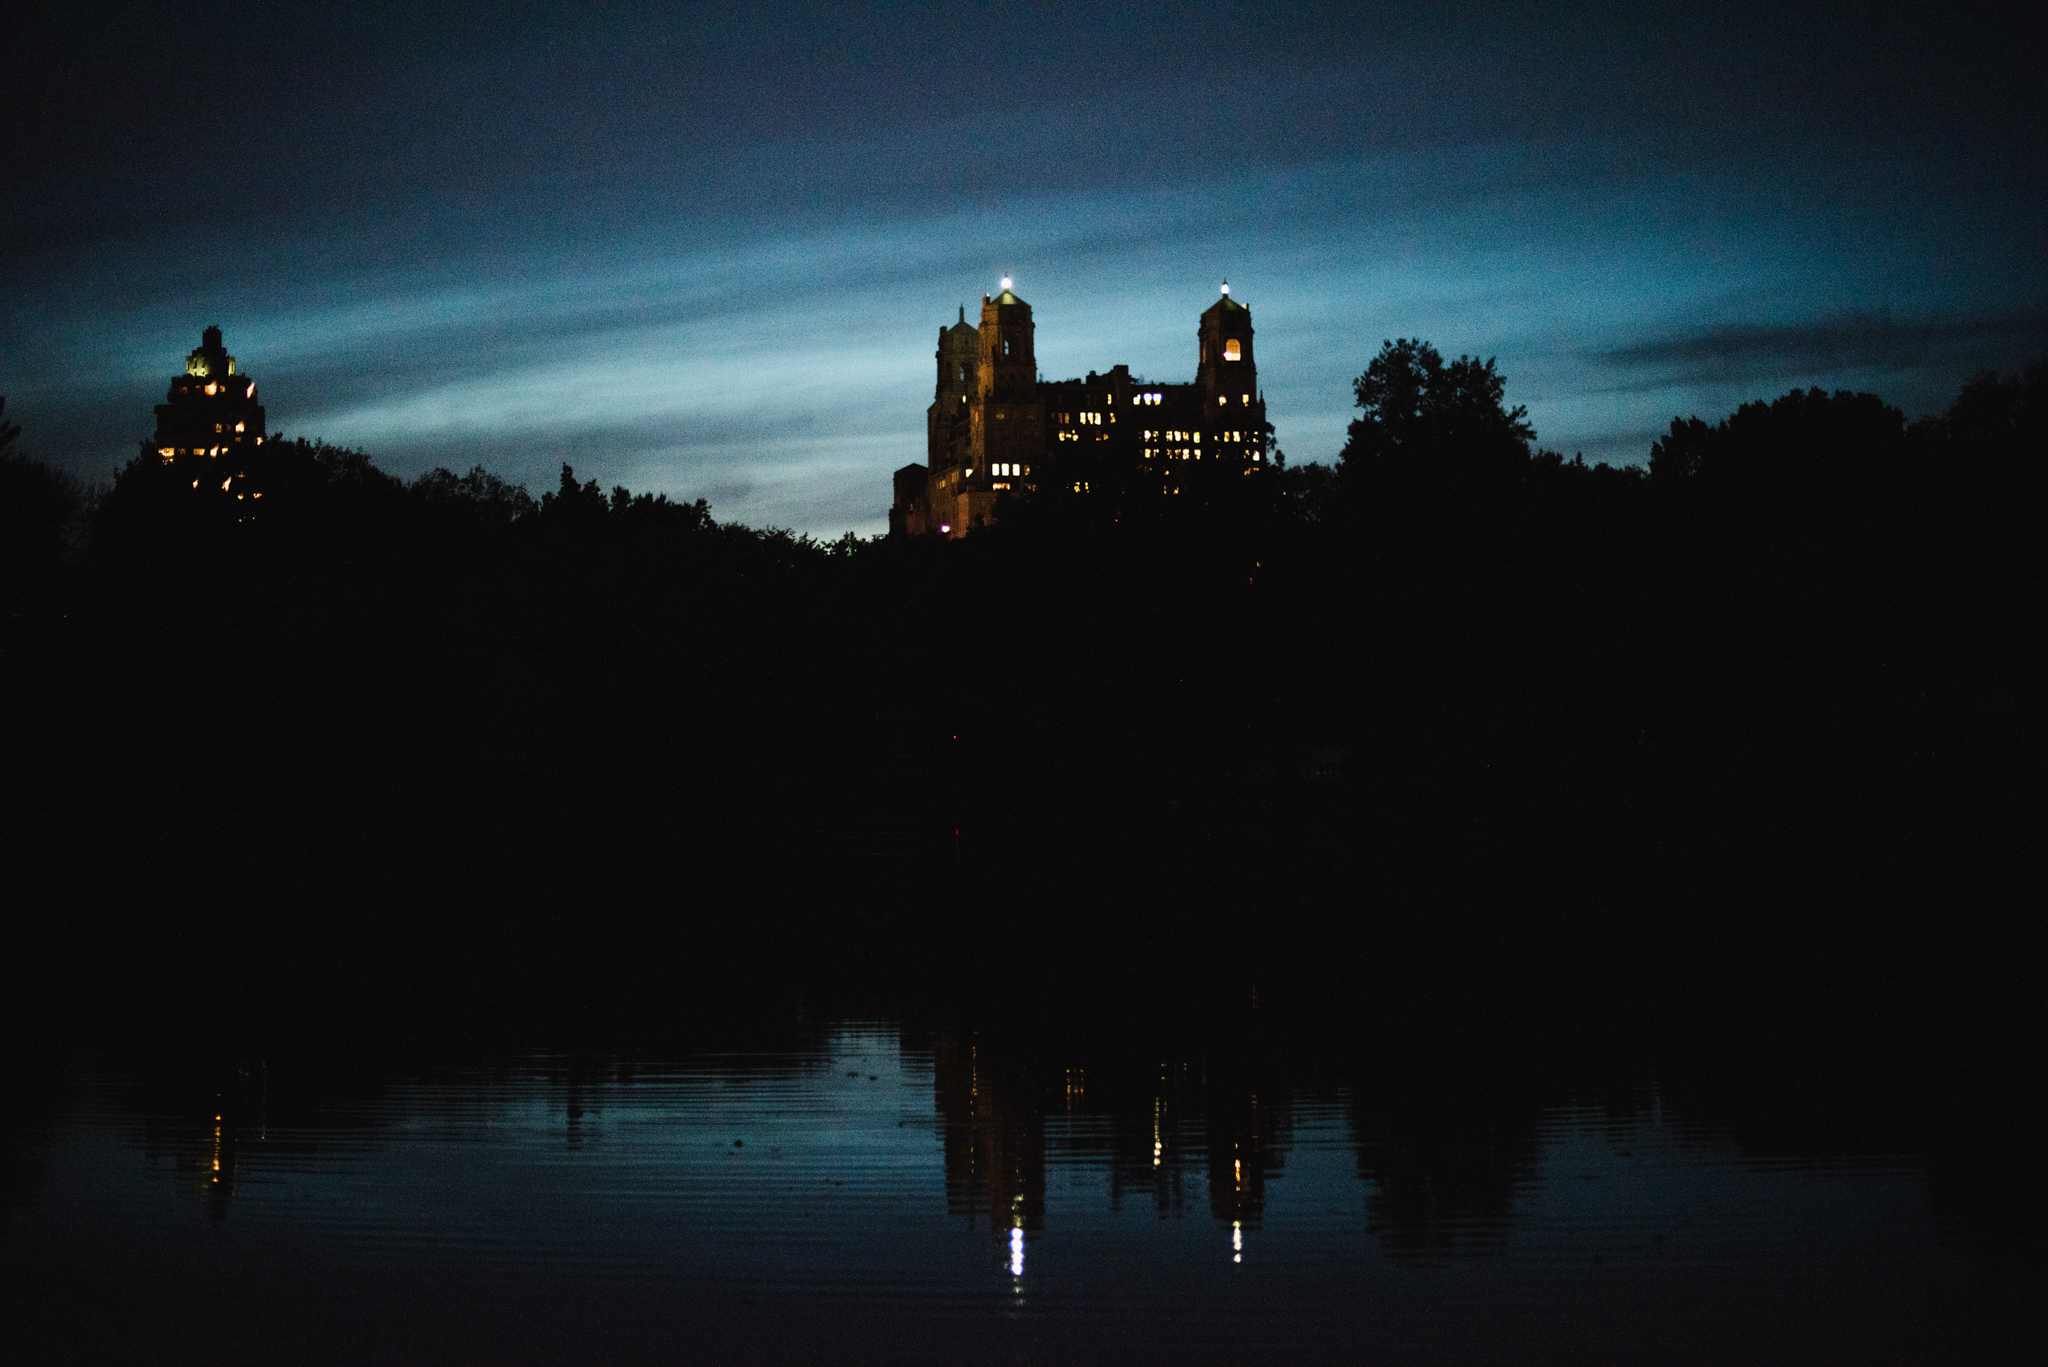 twilight view of building and lake in central park